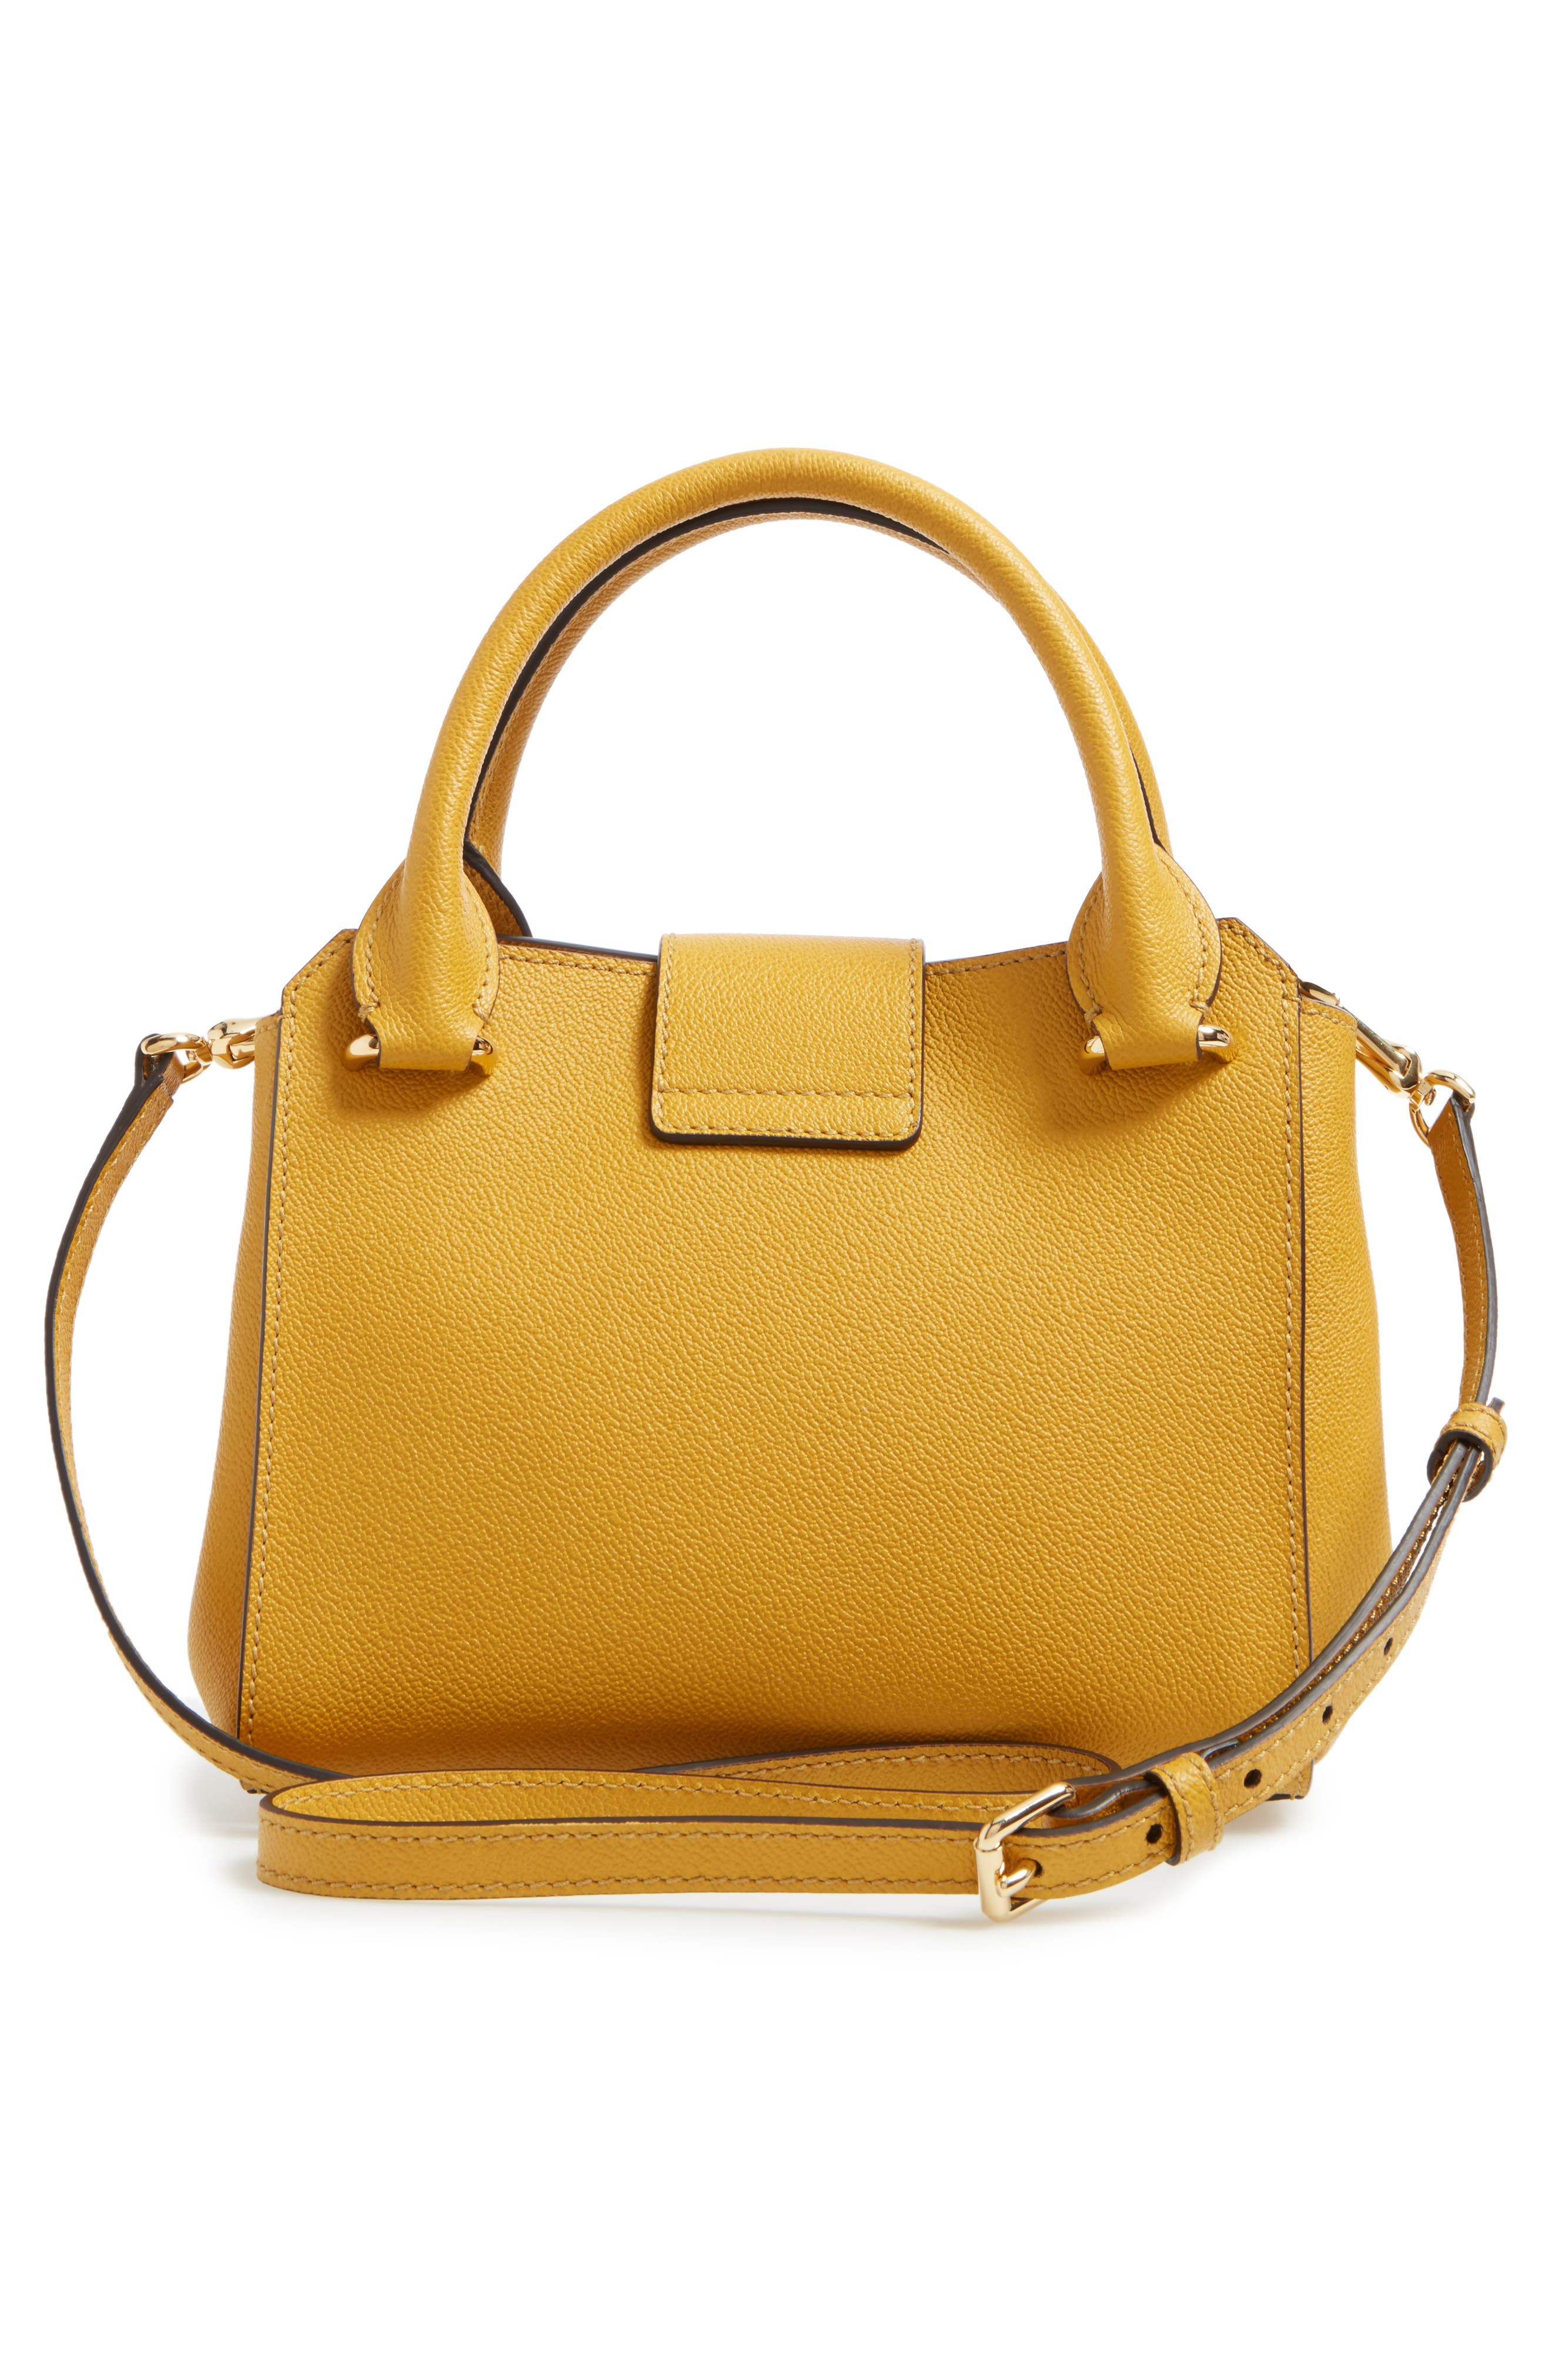 Alternate Image 3  - Burberry Small Calfskin Leather Tote